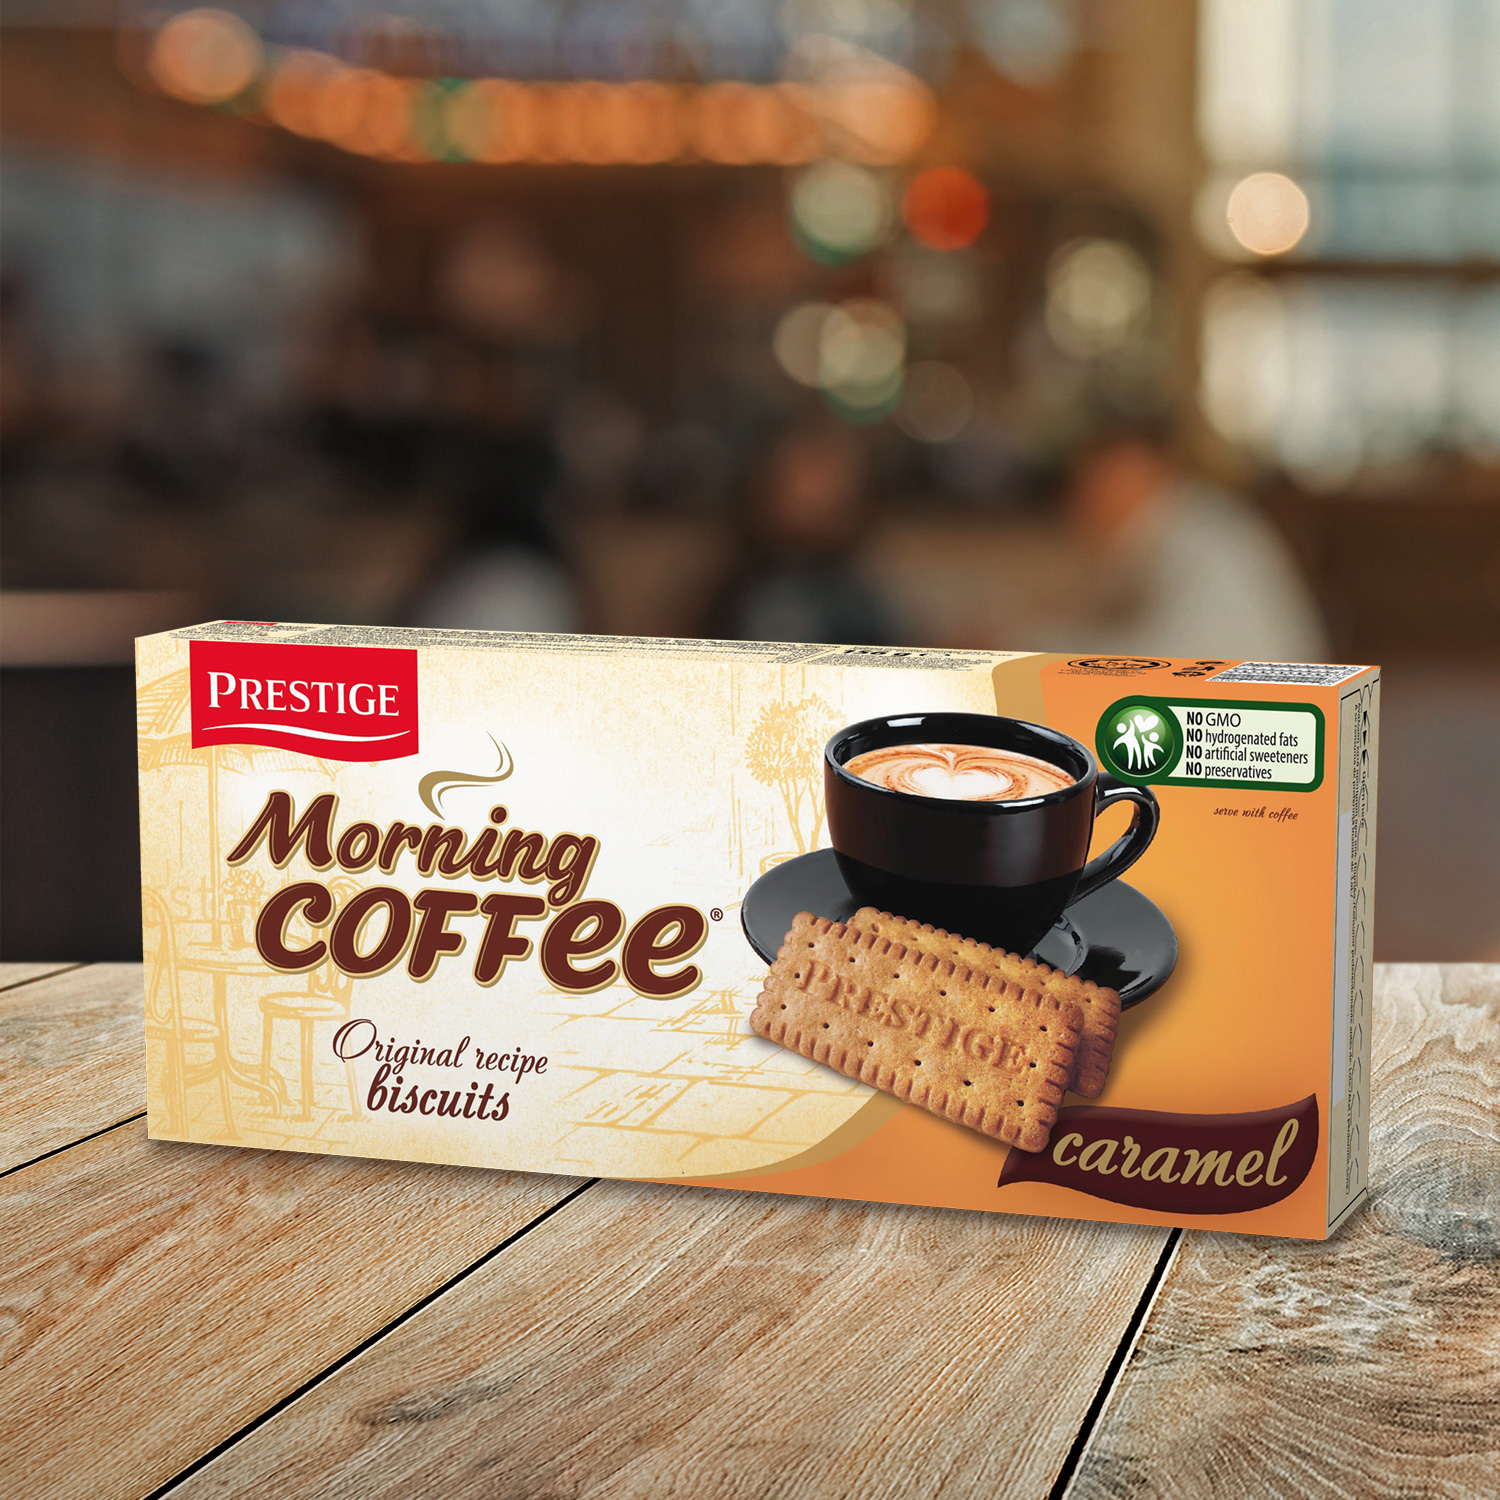 Morning Coffee Biscuits Caramel